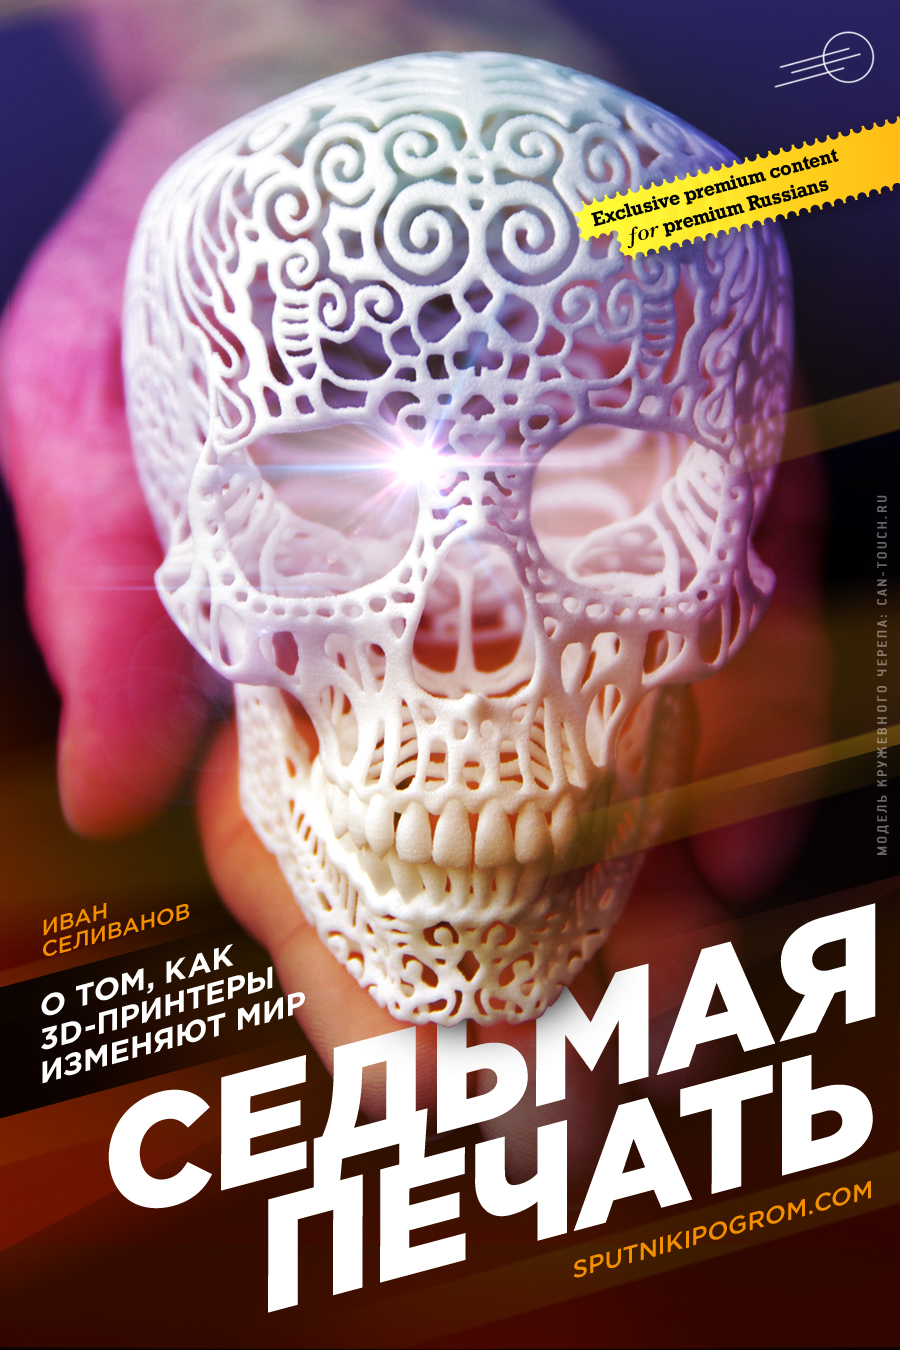 7thcover